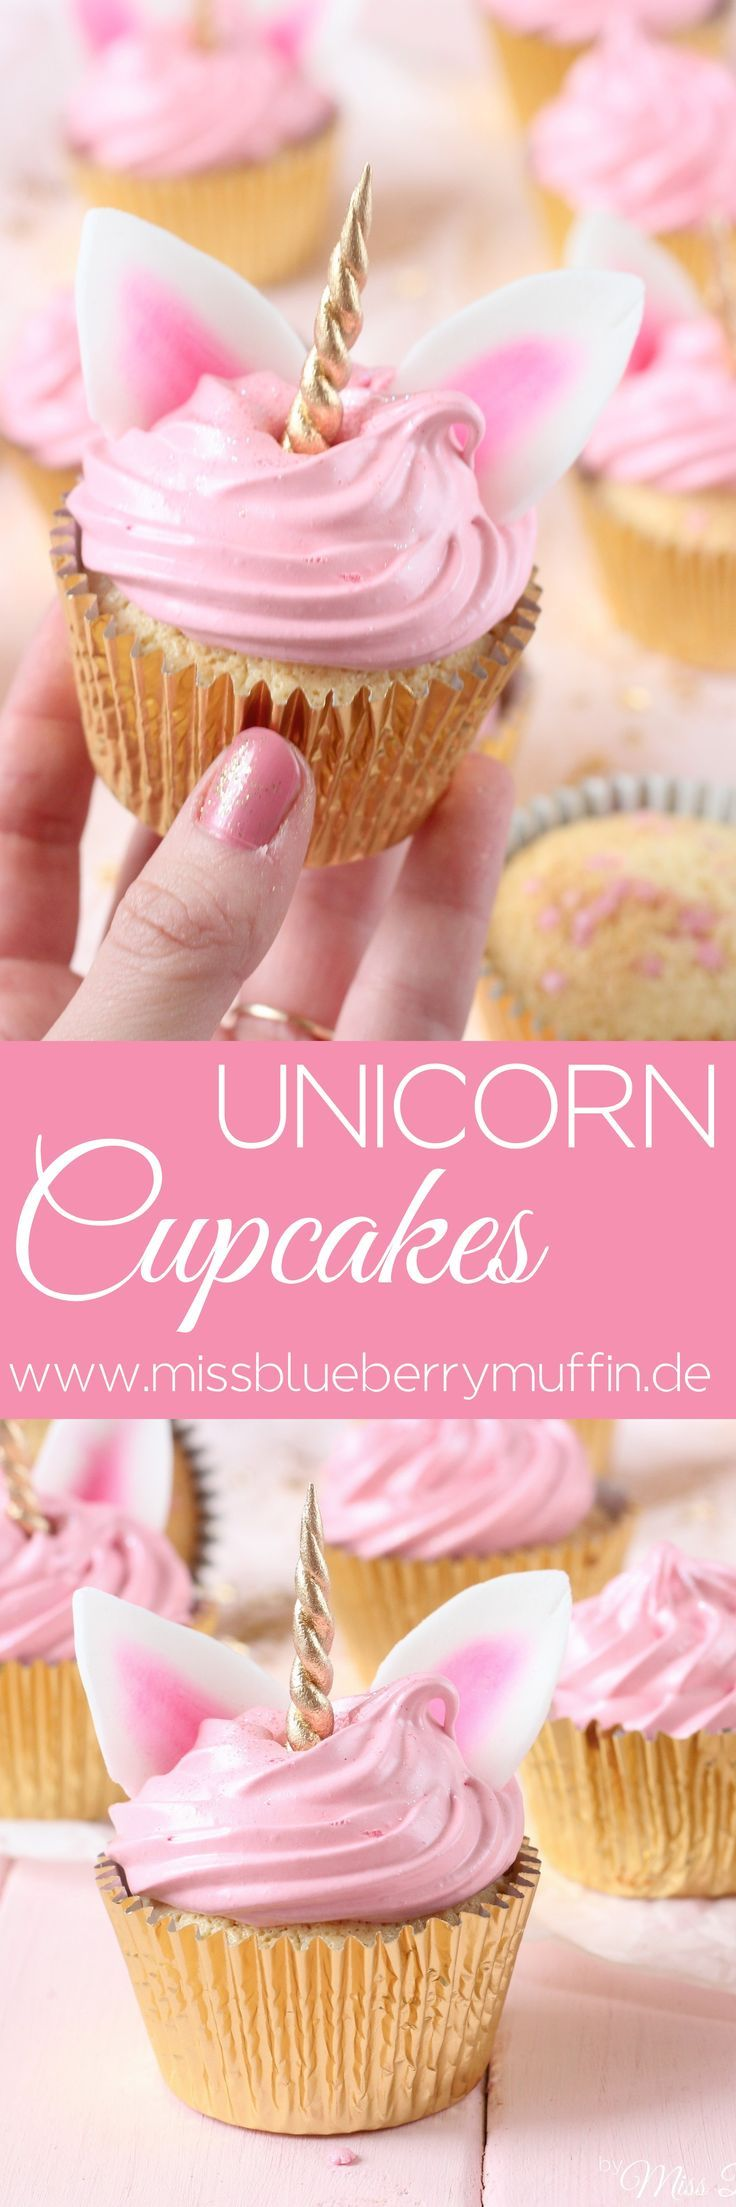 Zauberhafte Einhorn Cupcakes mit Marshmallow-Creme // Cute Unicorn Cupcakes with Seven Minute Frosting ♥️